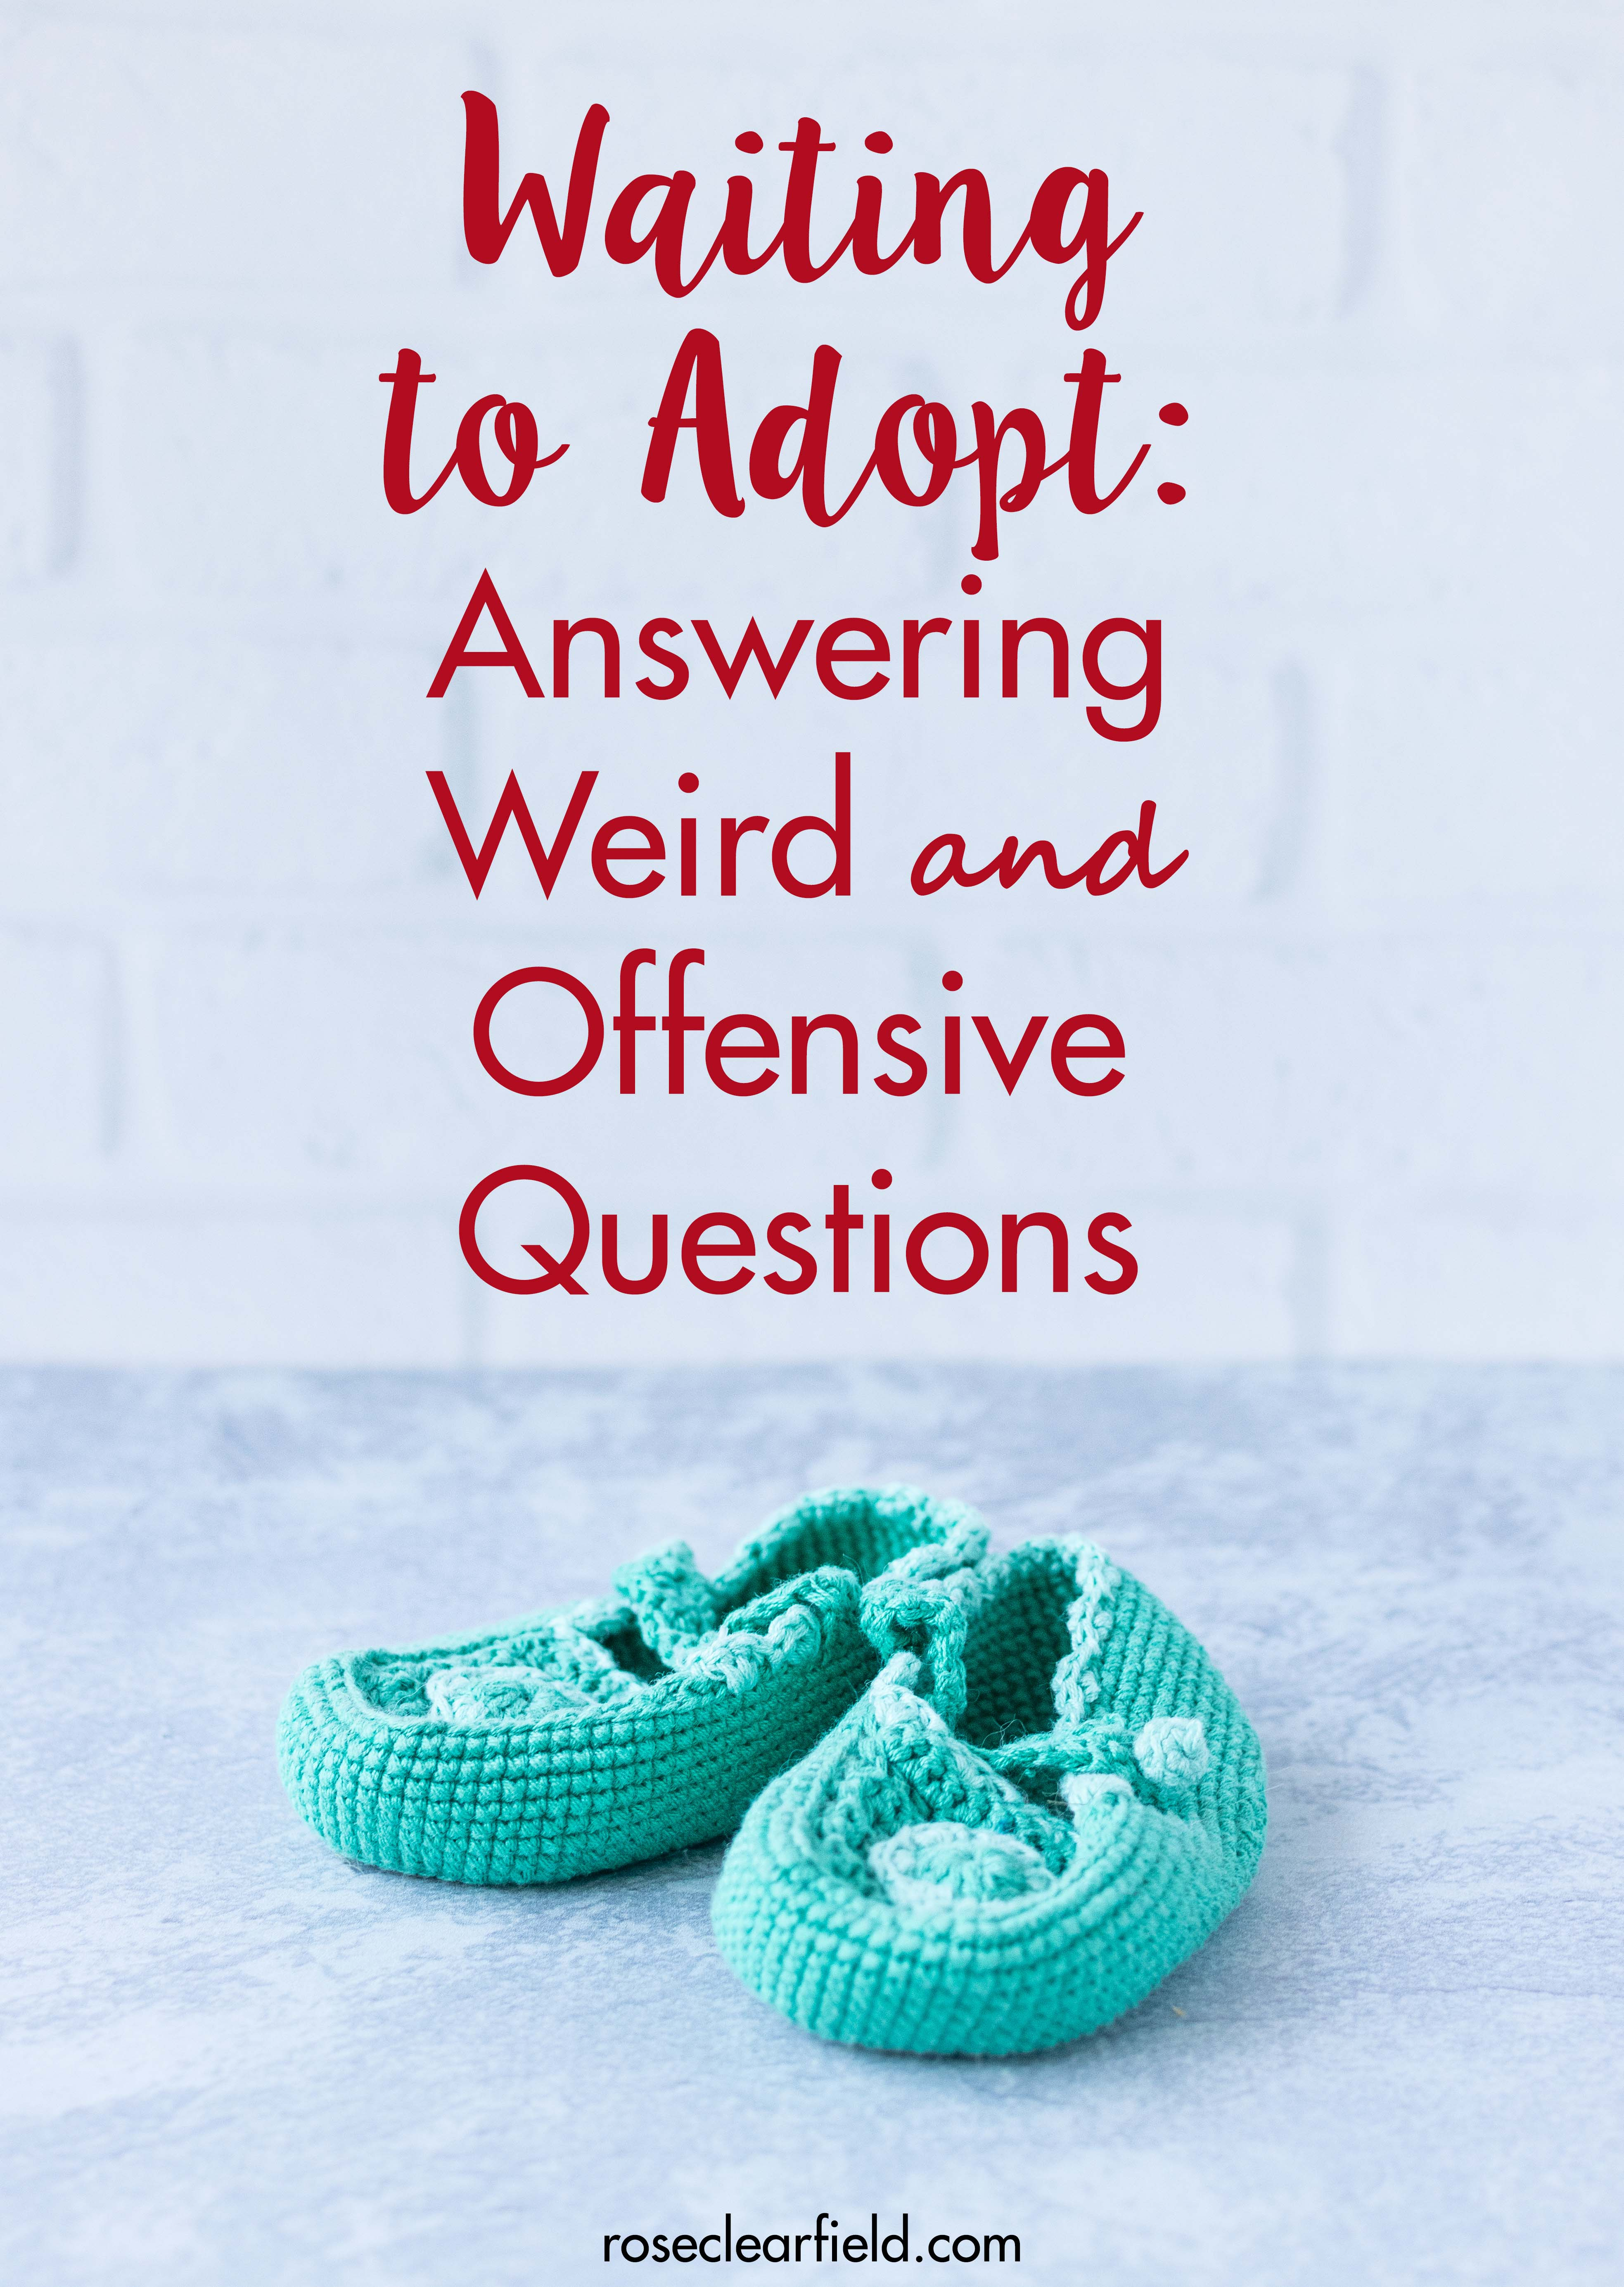 Waiting to Adopt Answering Weird and Offensive Questions | https://www.roseclearfield.com